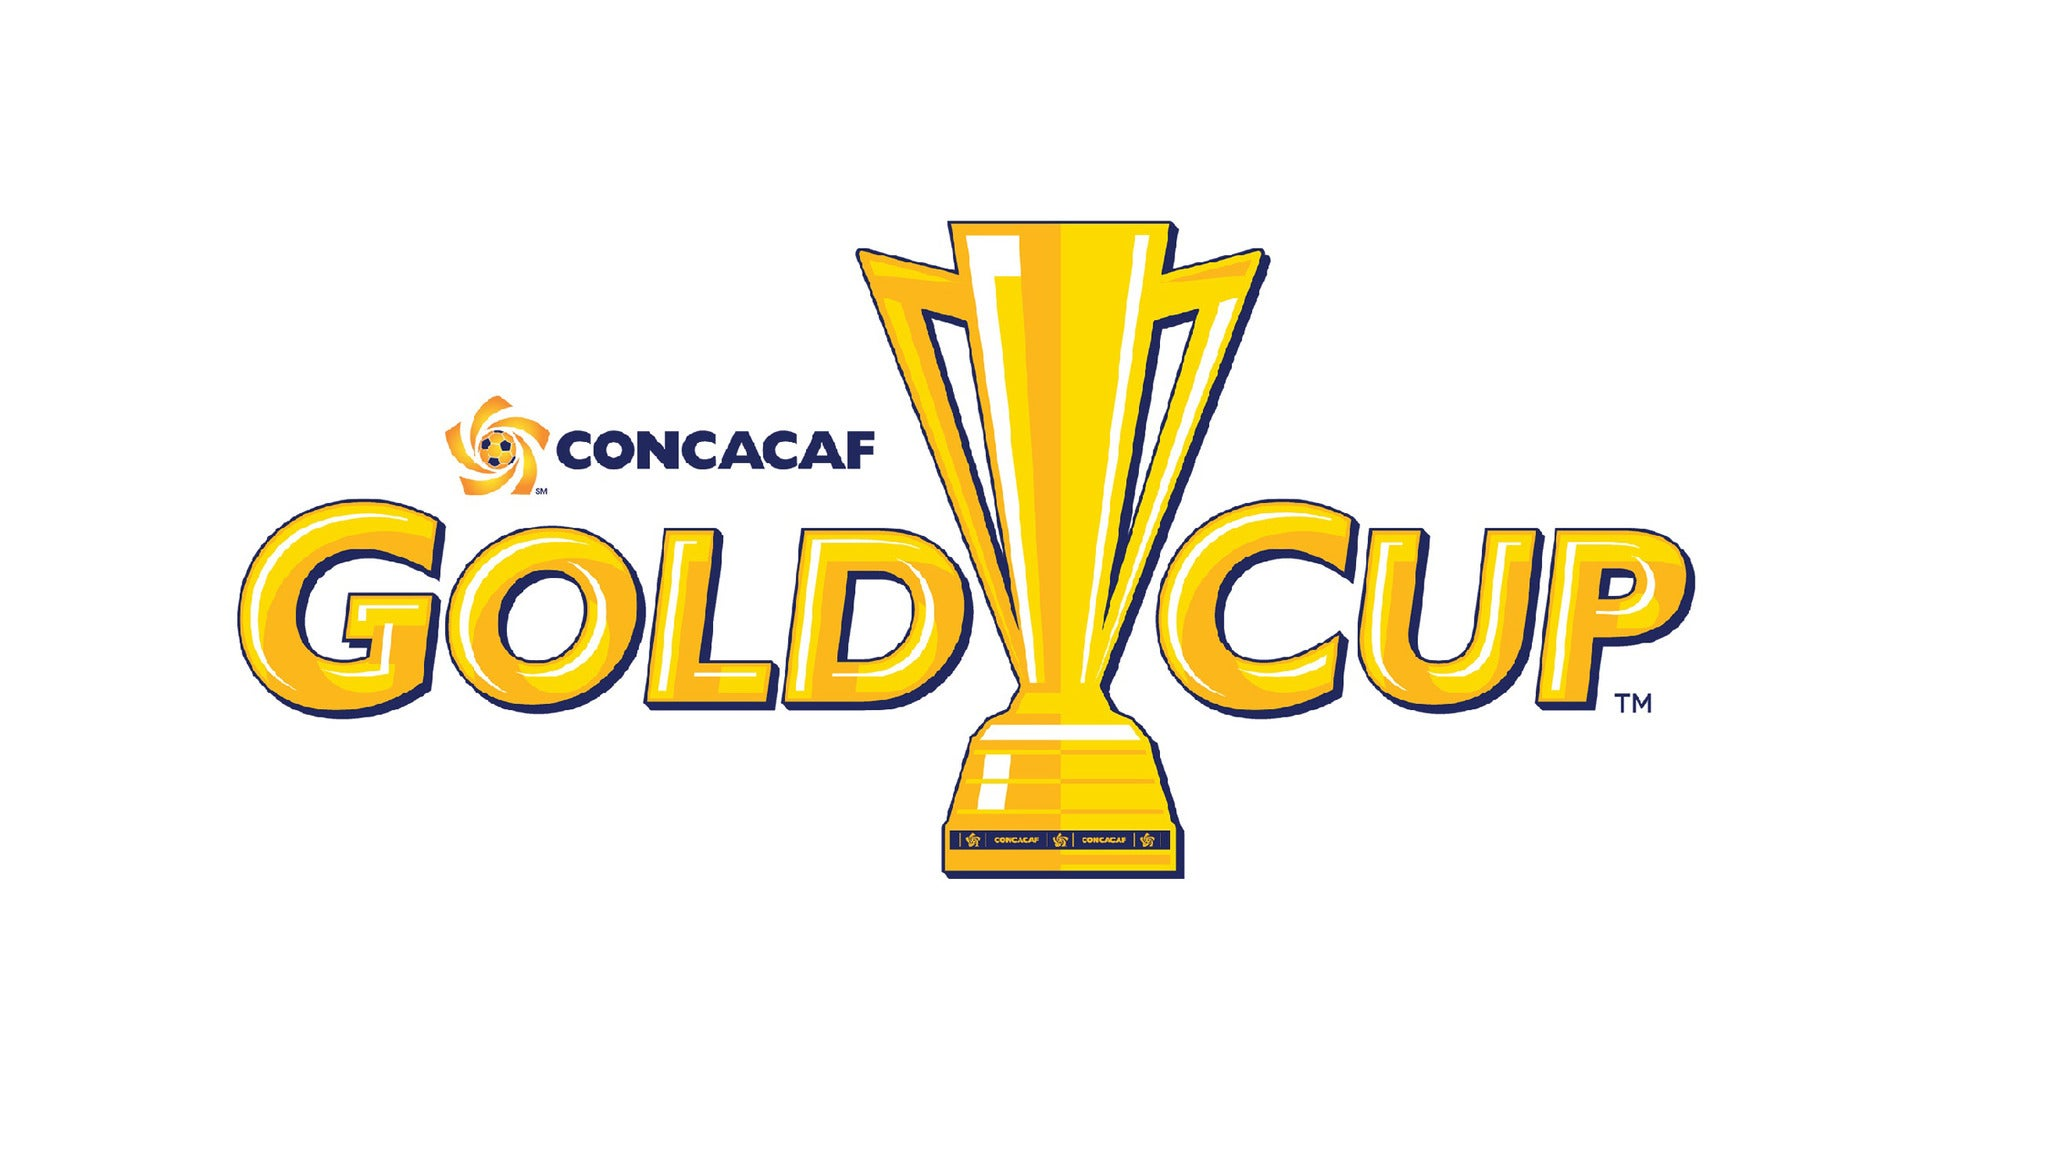 CONCACAF Gold Cup - Semifinal - Premium Seating at Rose Bowl